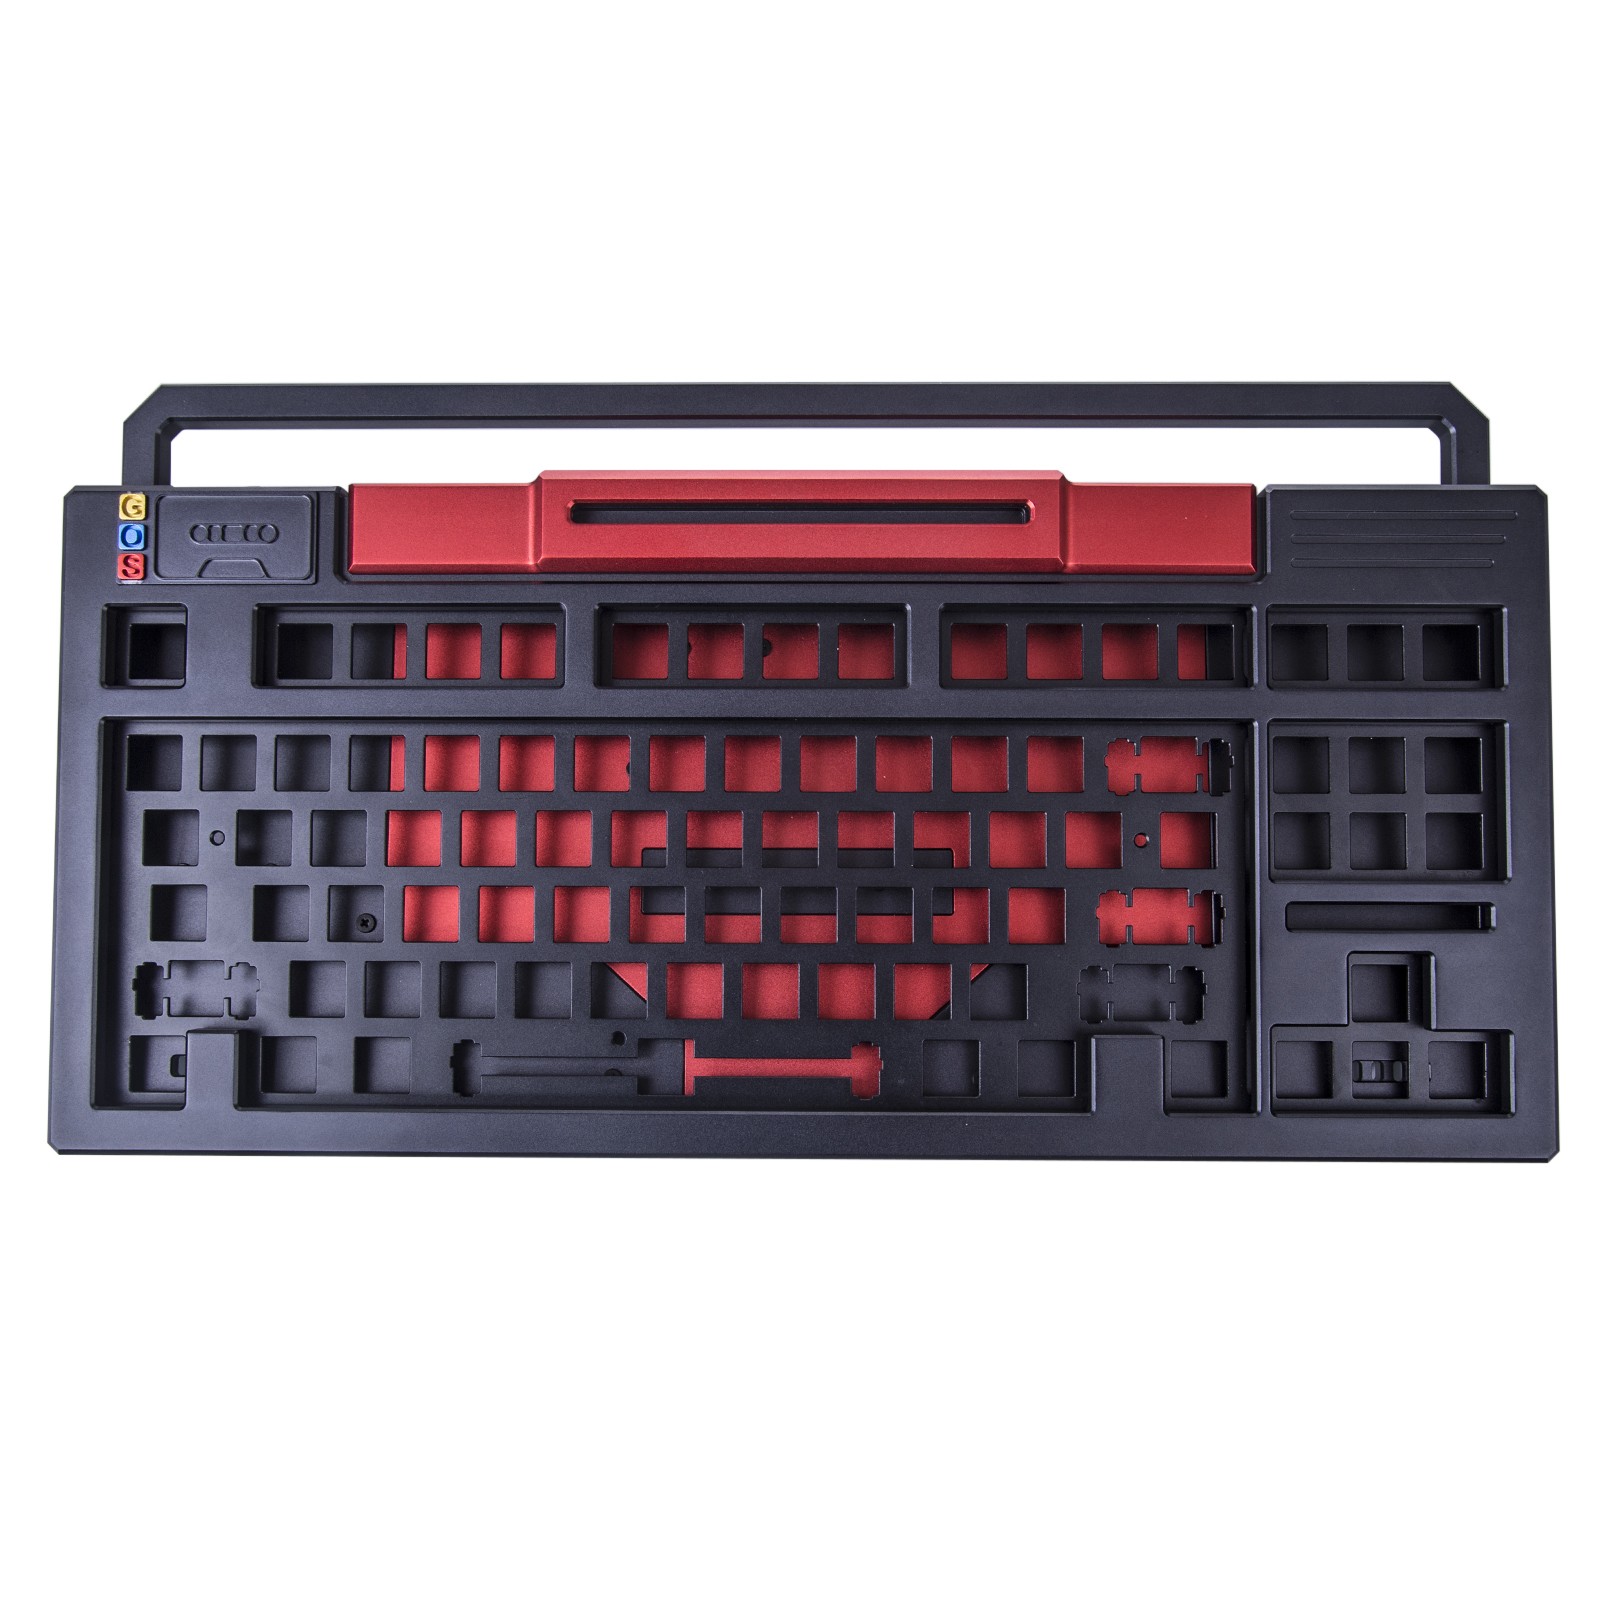 GOS-PLPL 87 Single Mode PCB RGB Lights Hot Swappable Keyboard Kits (Excluded Switches Keycaps)